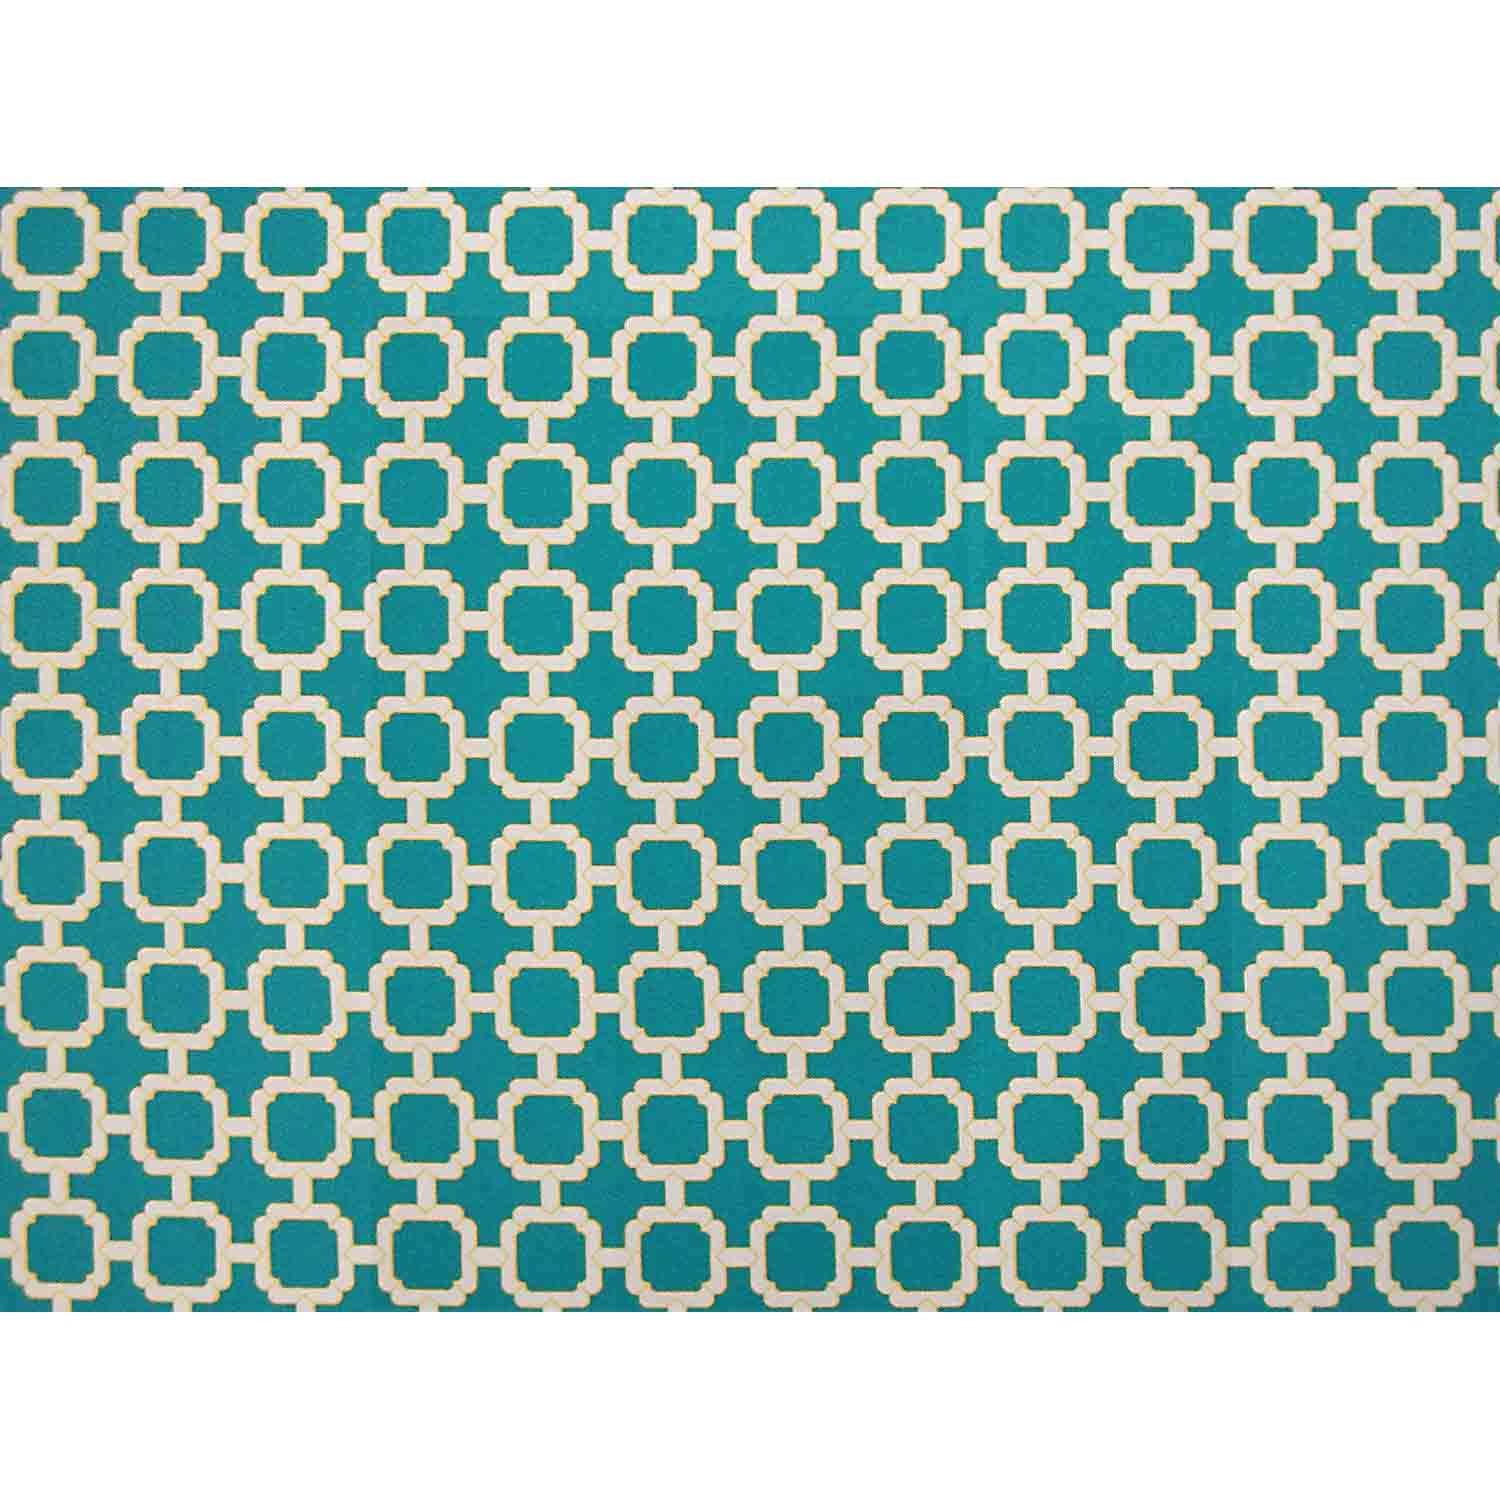 Hockteal Twin Size Futon Cover, 39 Inch x 75 Inch - Proudly Made in USA by DCG Stores